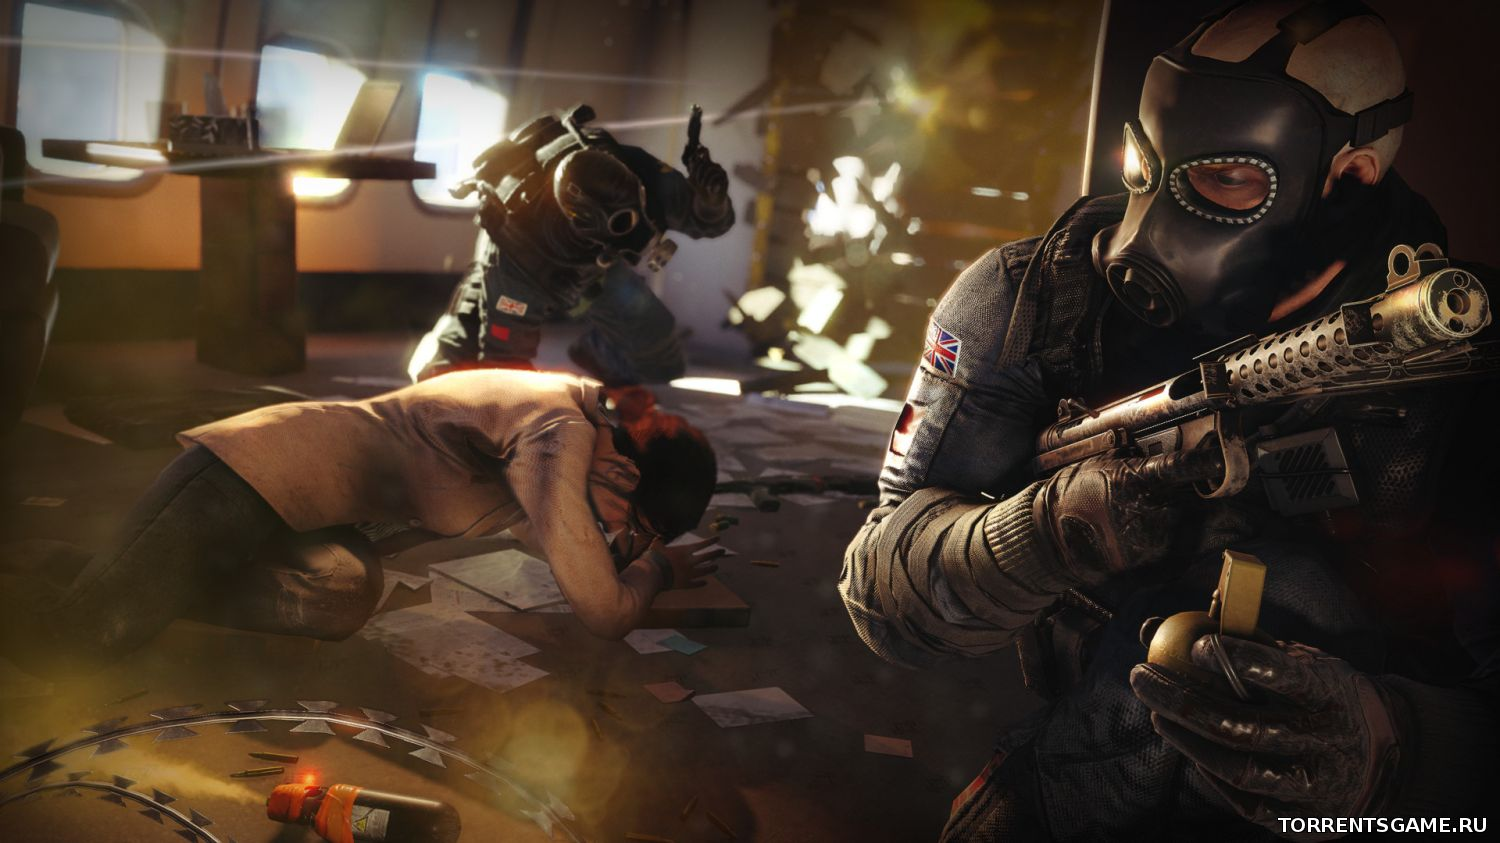 /load/games/action/tom_clancys_rainbow_six_siege/2-1-0-69